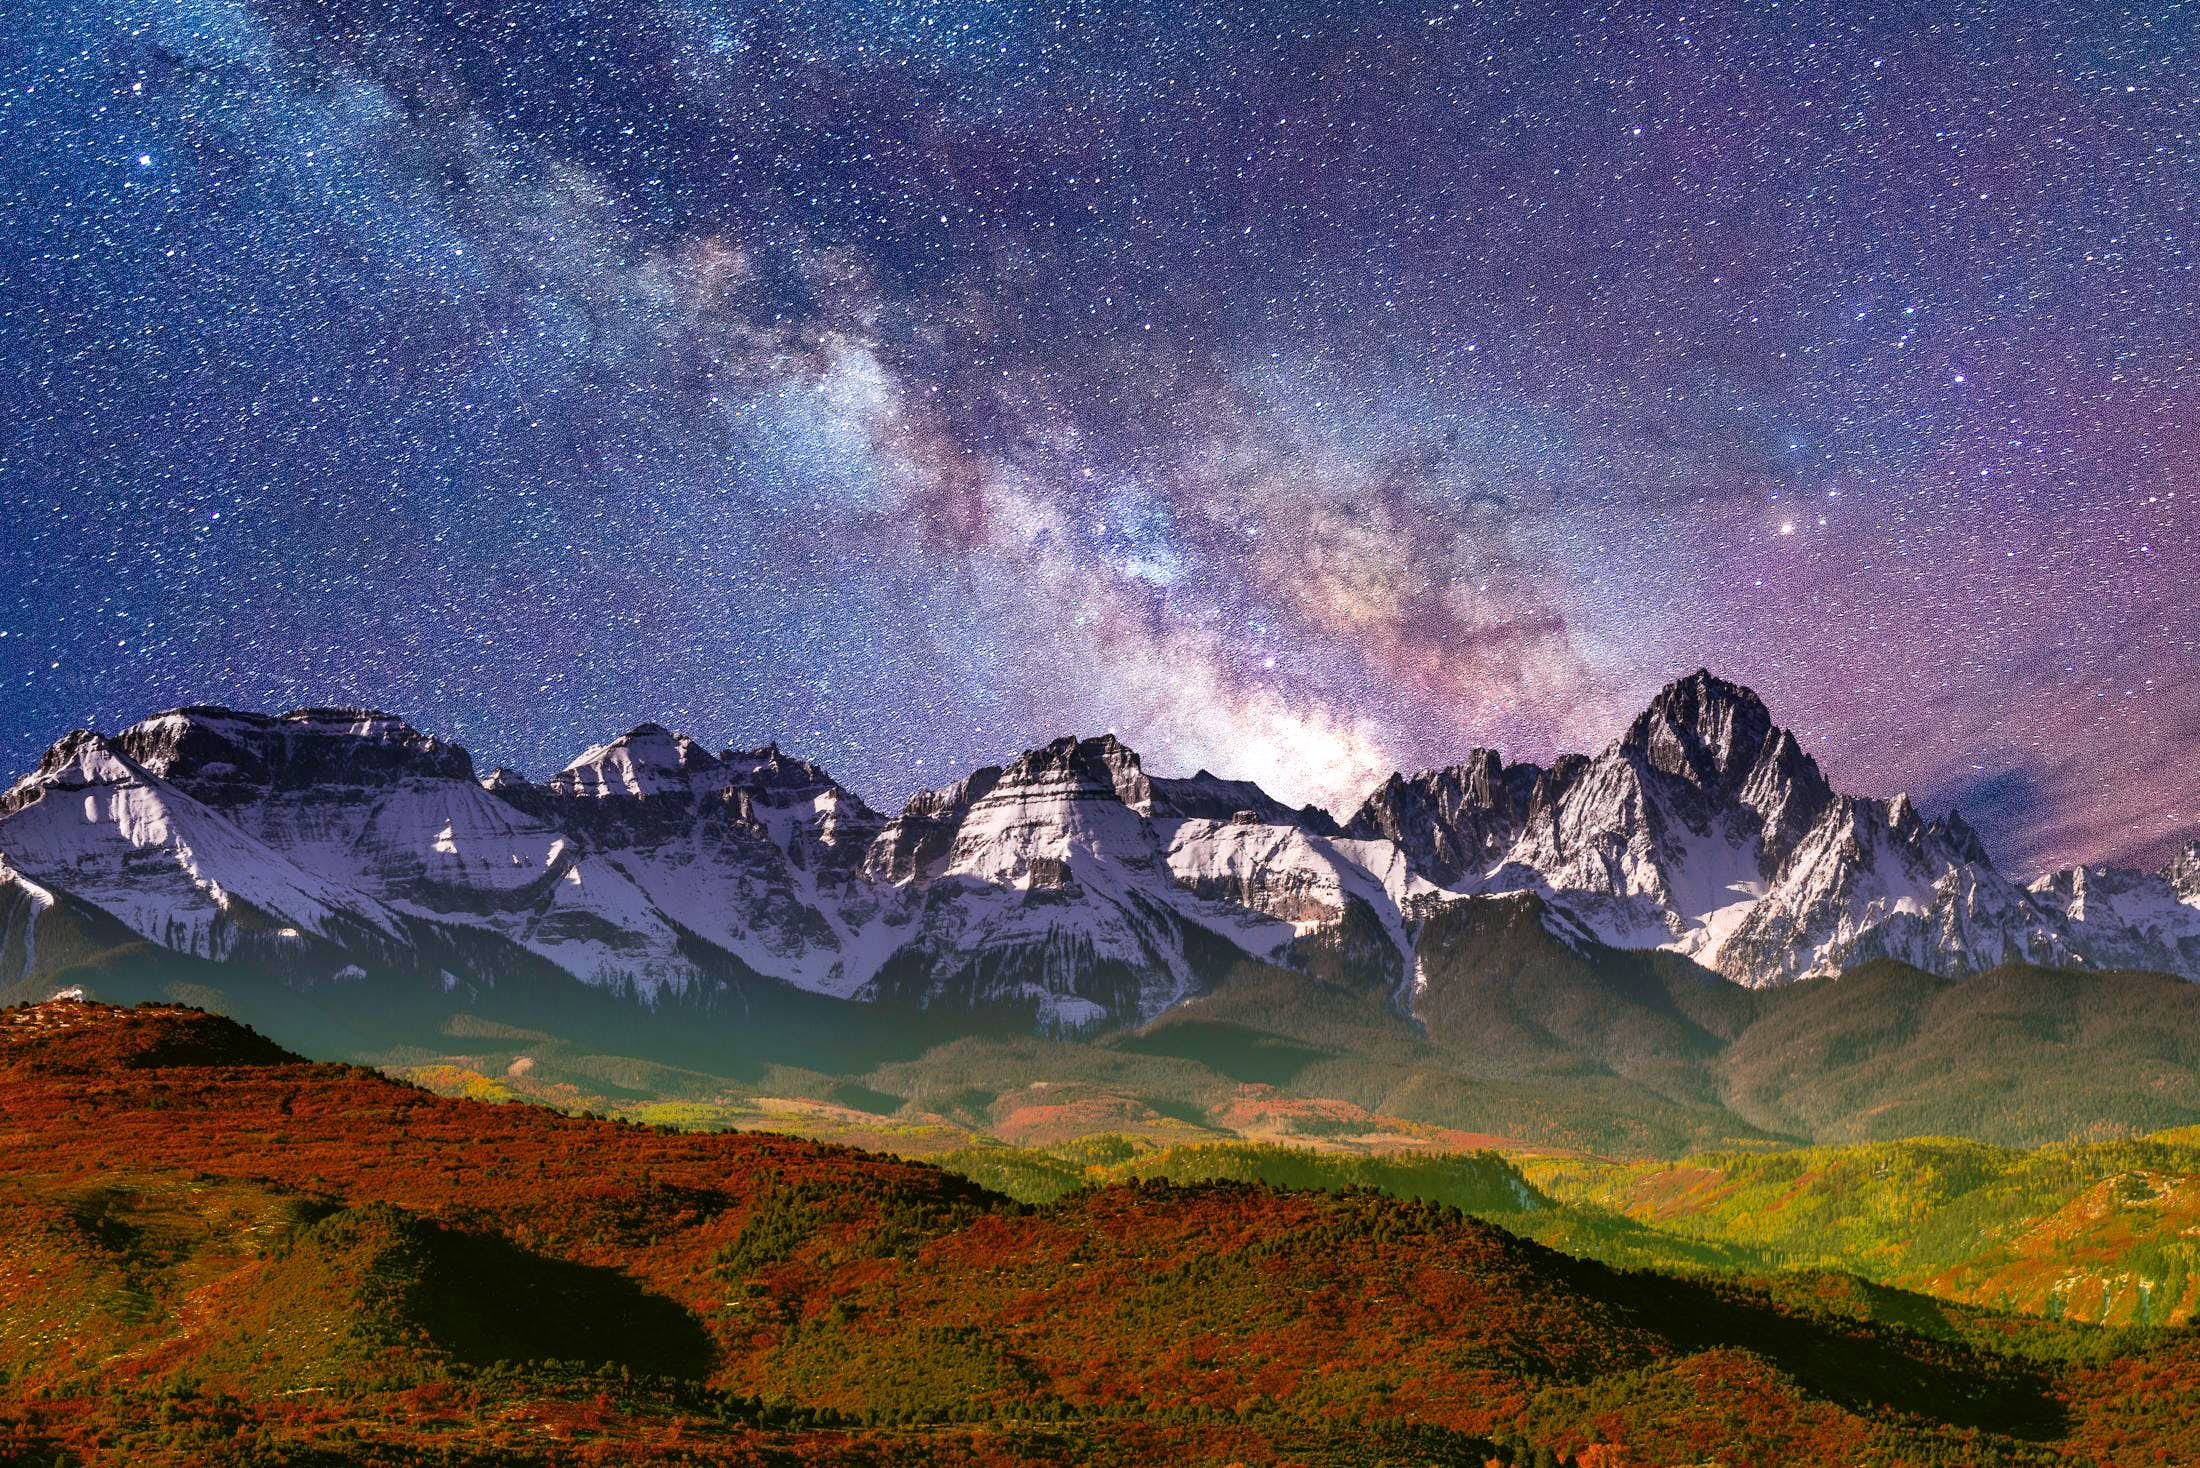 Milky Way Photographs